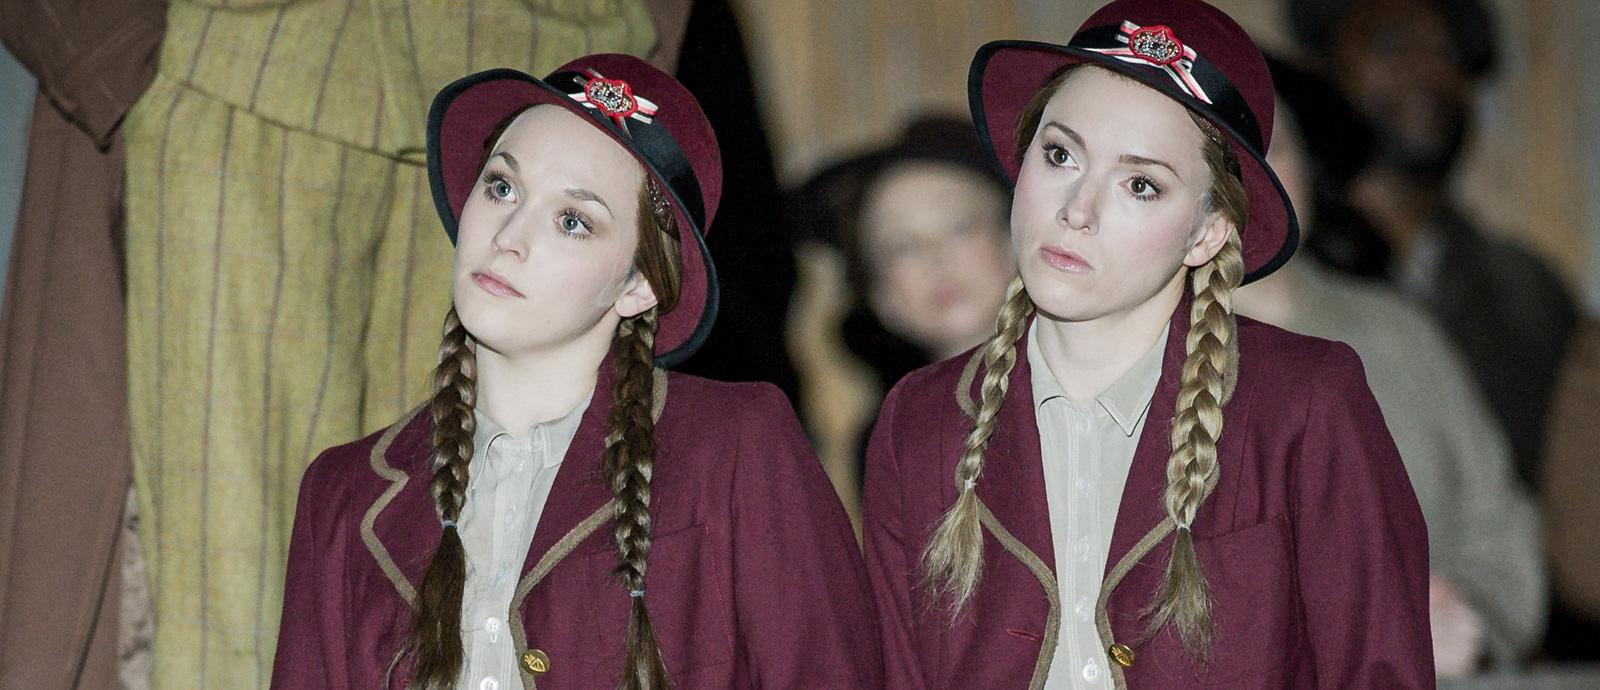 ENO Peter Grimes: Rhian Lois as First Niece and Mary Bevan as Second Niece (c) Robert Workman